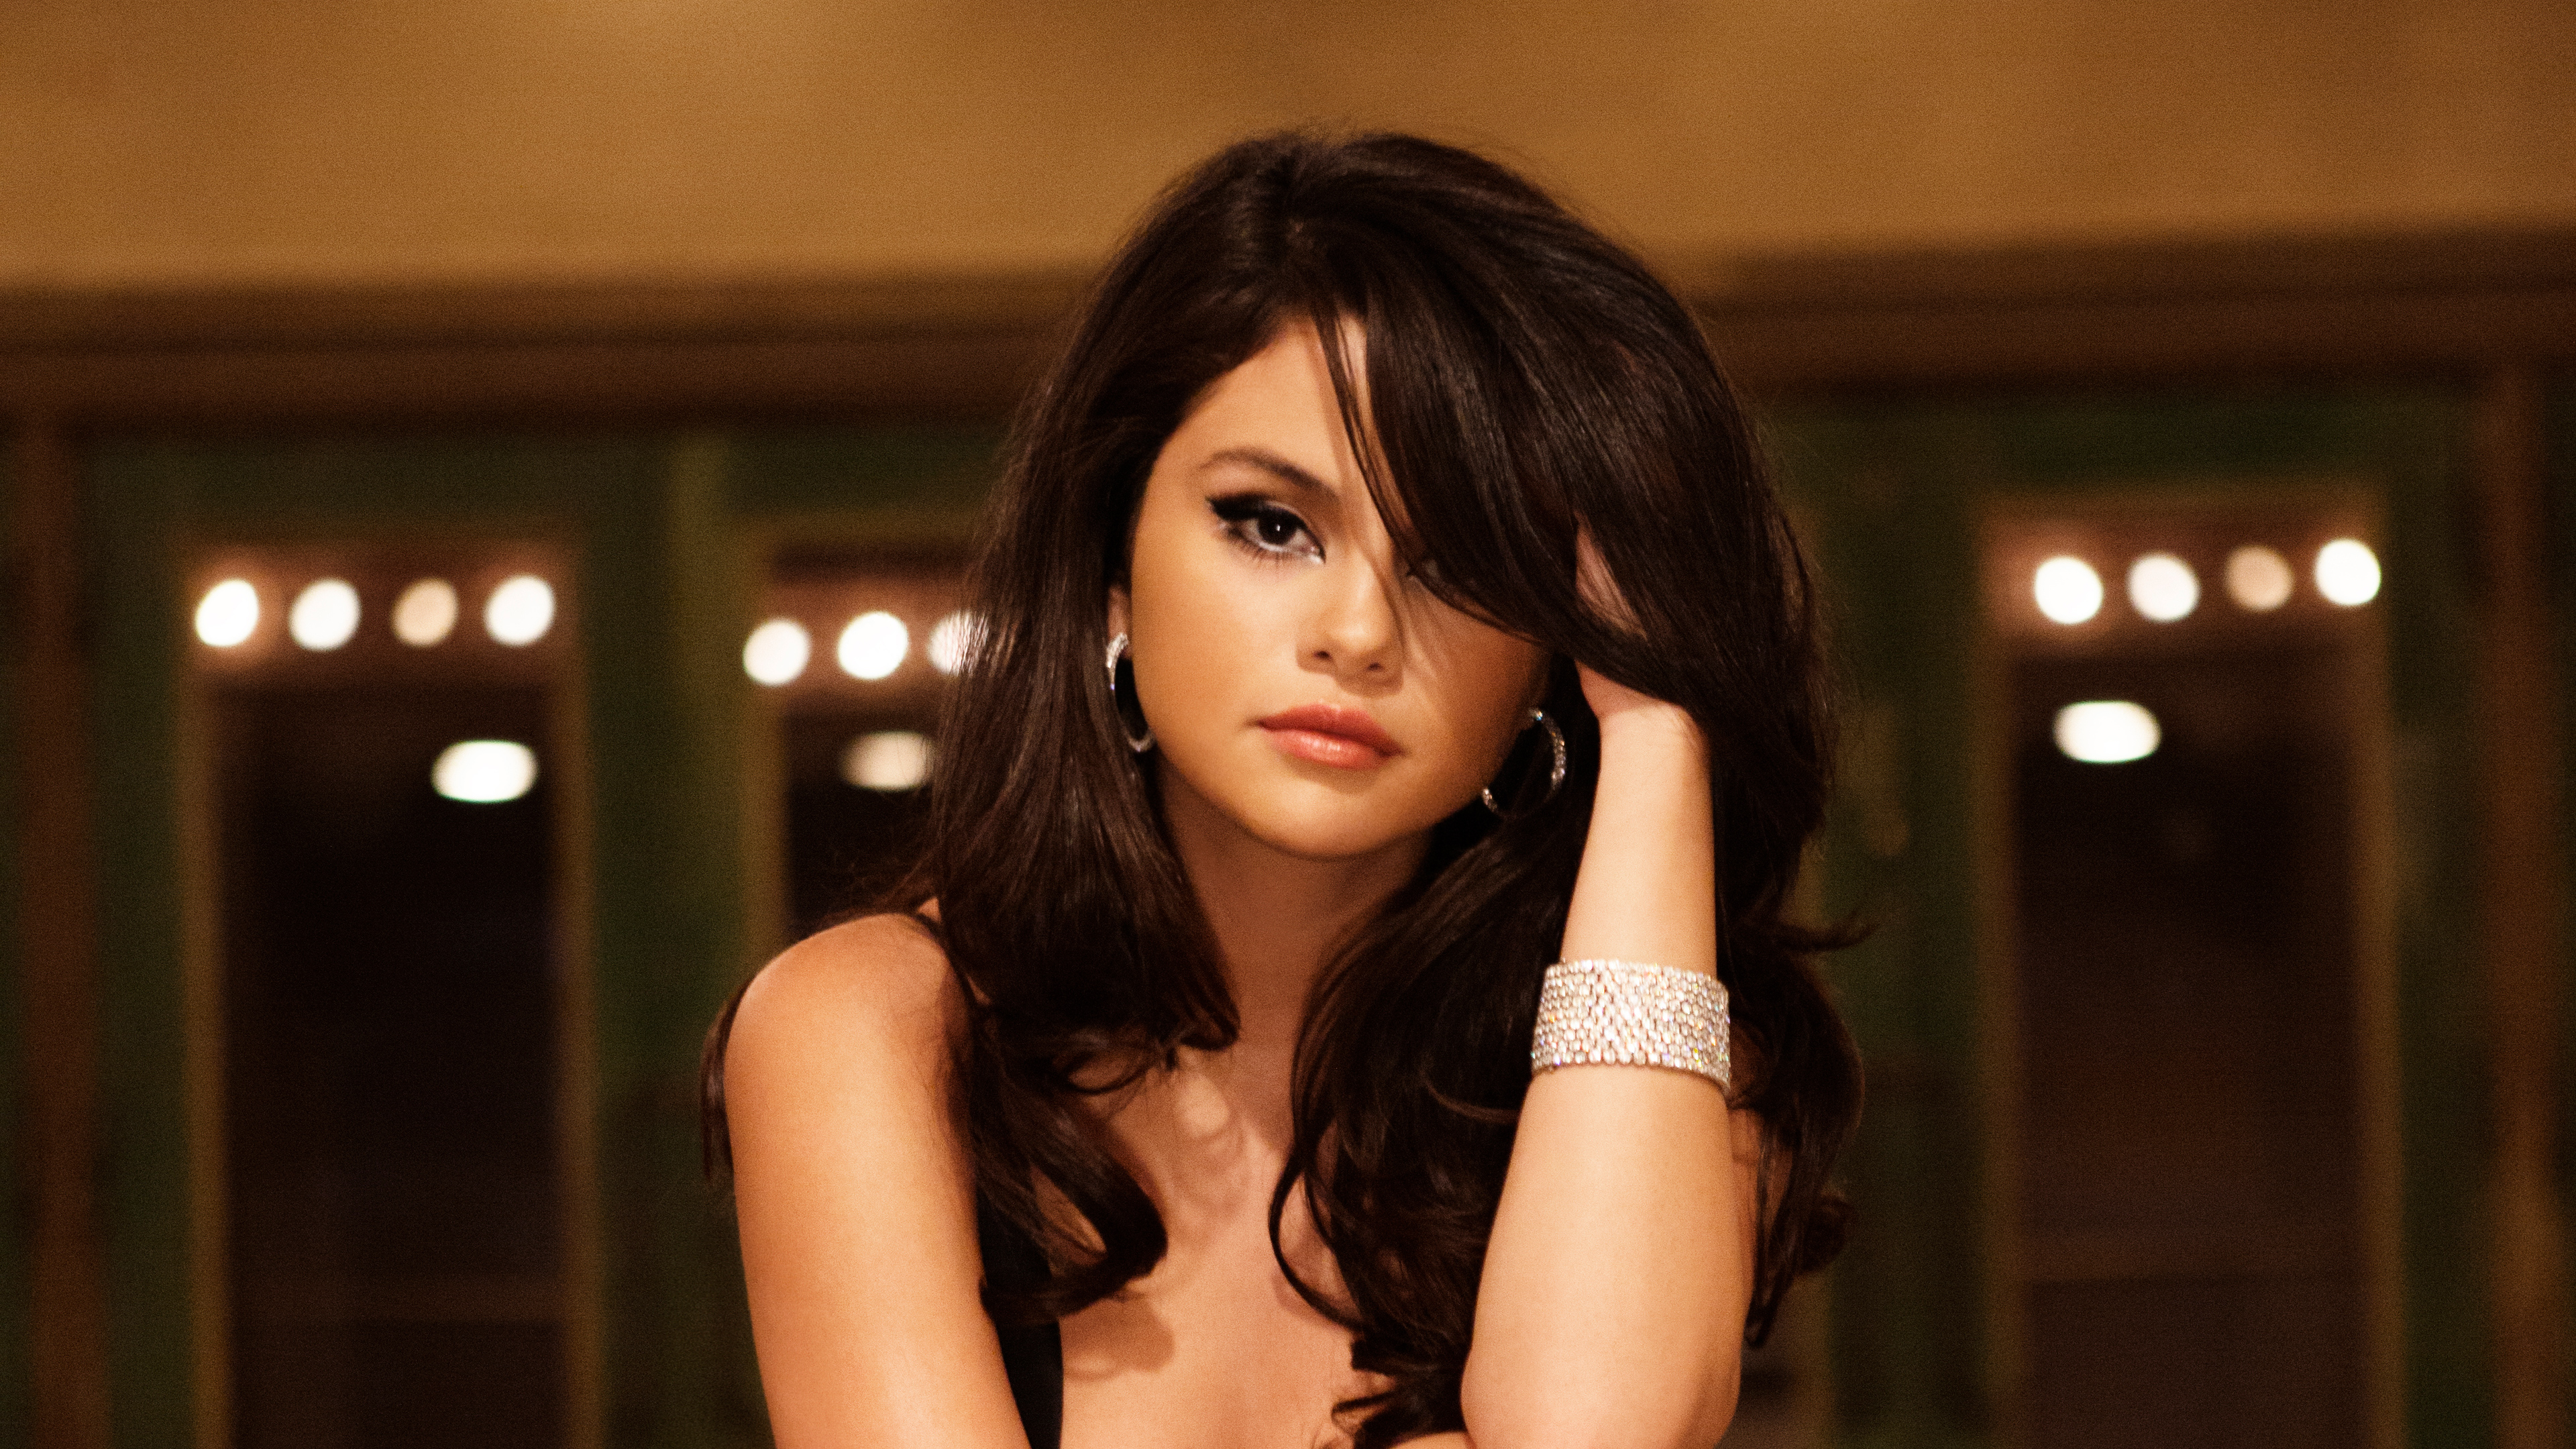 selena gomez 4k new 1546277077 - Selena Gomez 4K New - selena gomez wallpapers, music wallpapers, hd-wallpapers, girls wallpapers, celebrities wallpapers, 4k-wallpapers